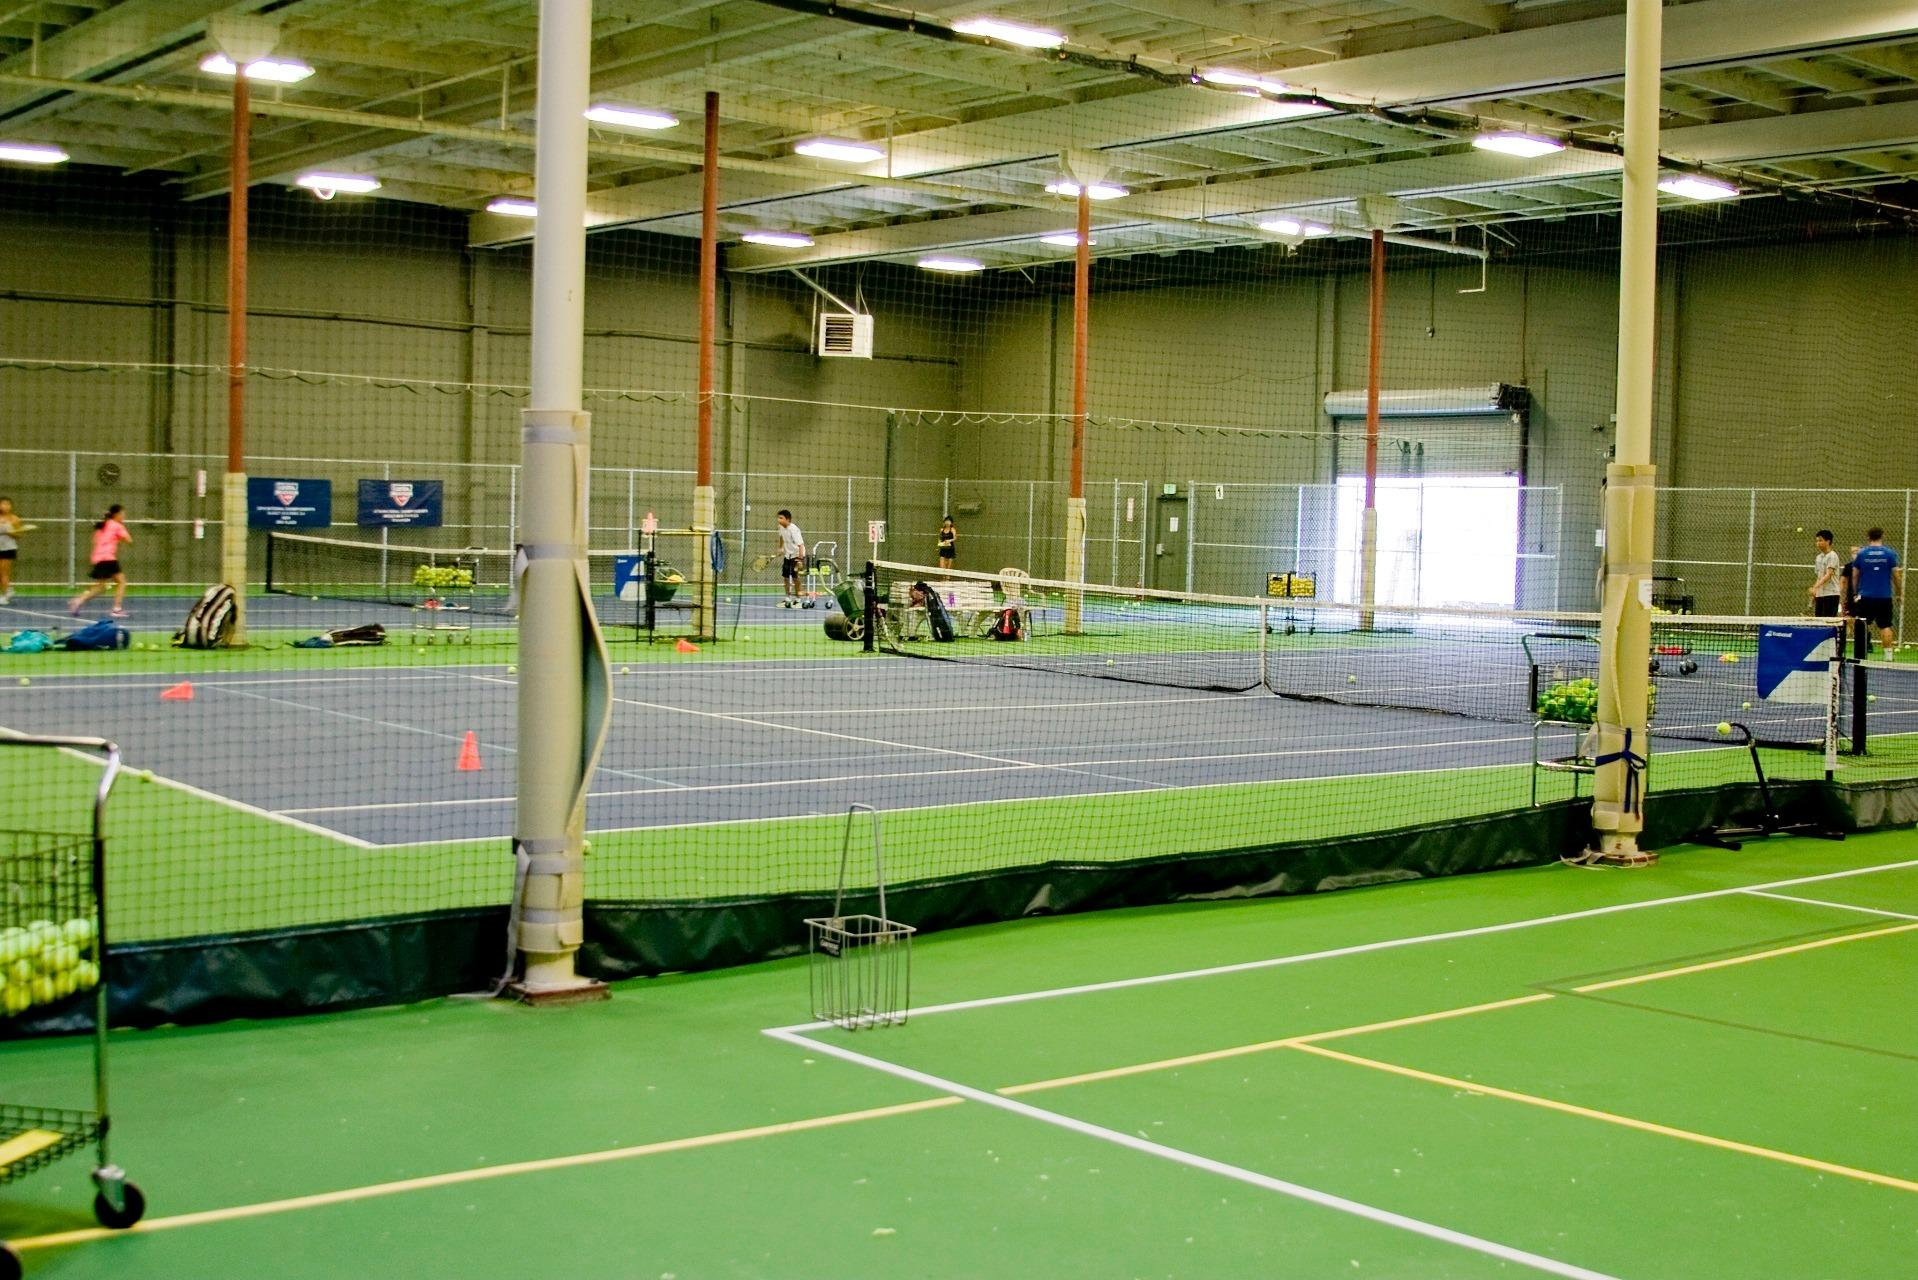 Our tennis shop near me has the largest selection of tennis equipment plus can perform racquet stringing and racquet customization. Click here for more. Our tennis shop near me has the largest selection of tennis equipment plus can perform racquet stringing and .